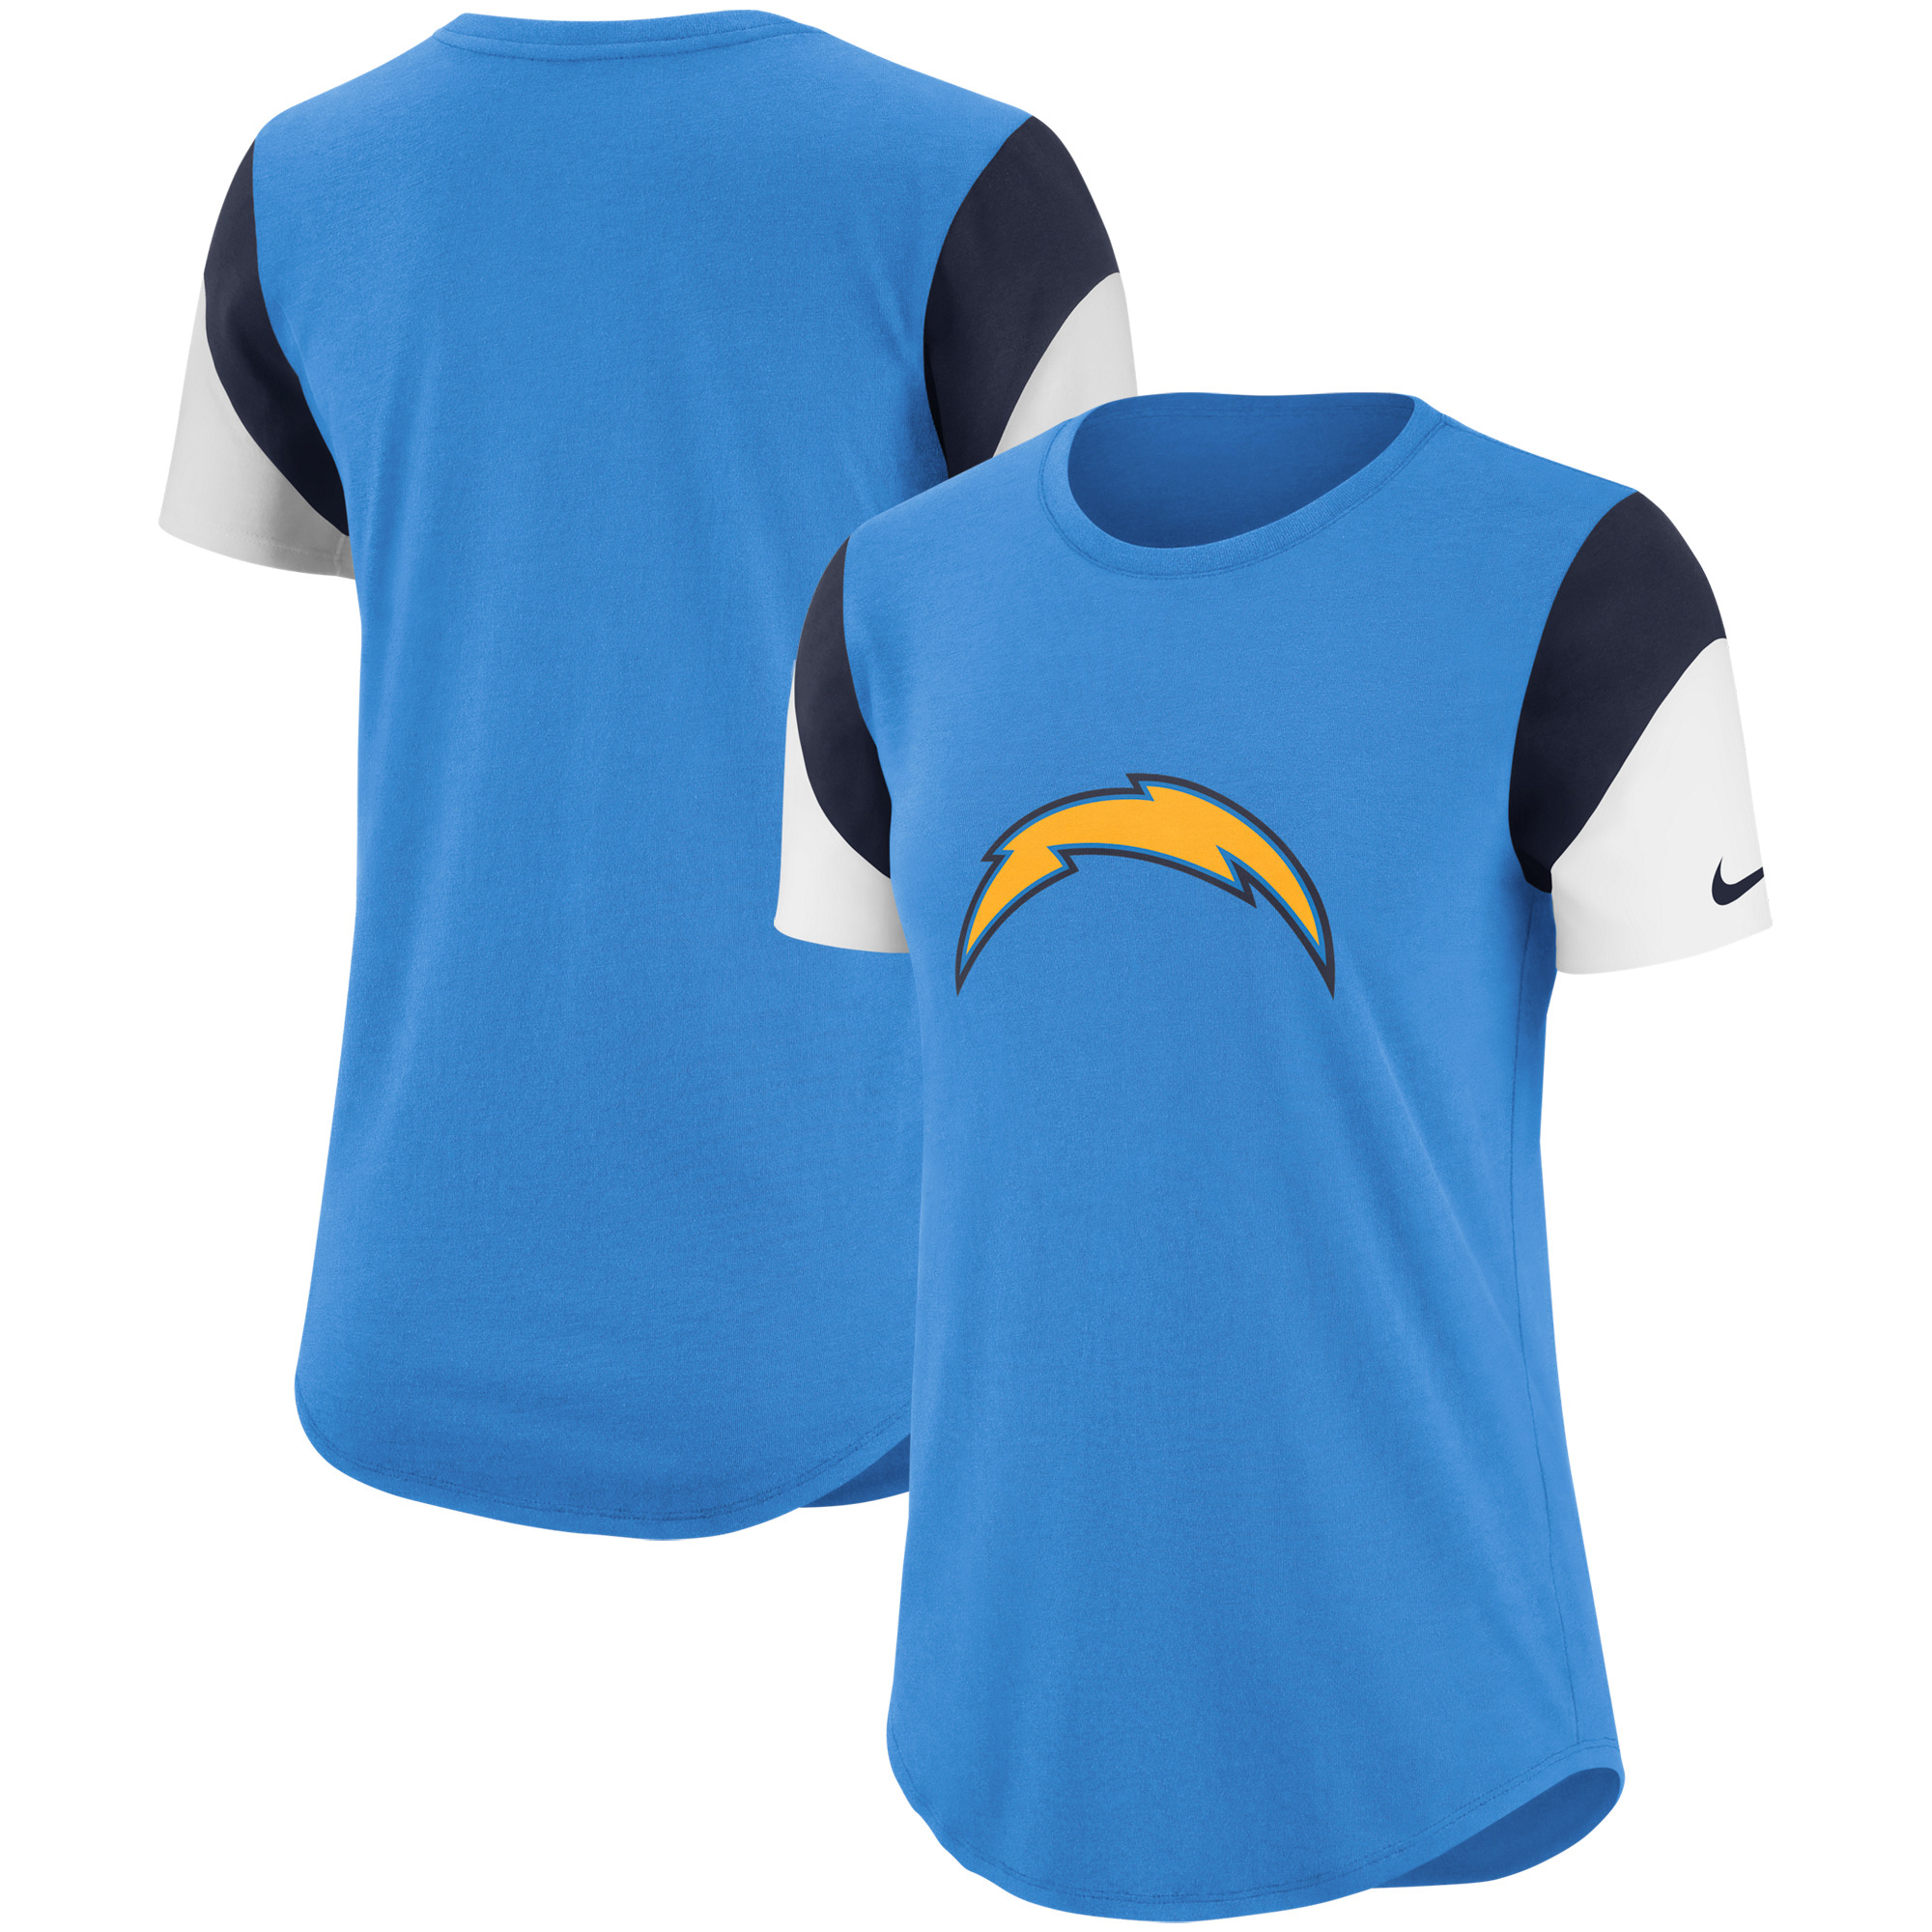 Los Angeles Chargers Nike Women's Tri-Blend Team Fan T-Shirt - Light Blue/Navy